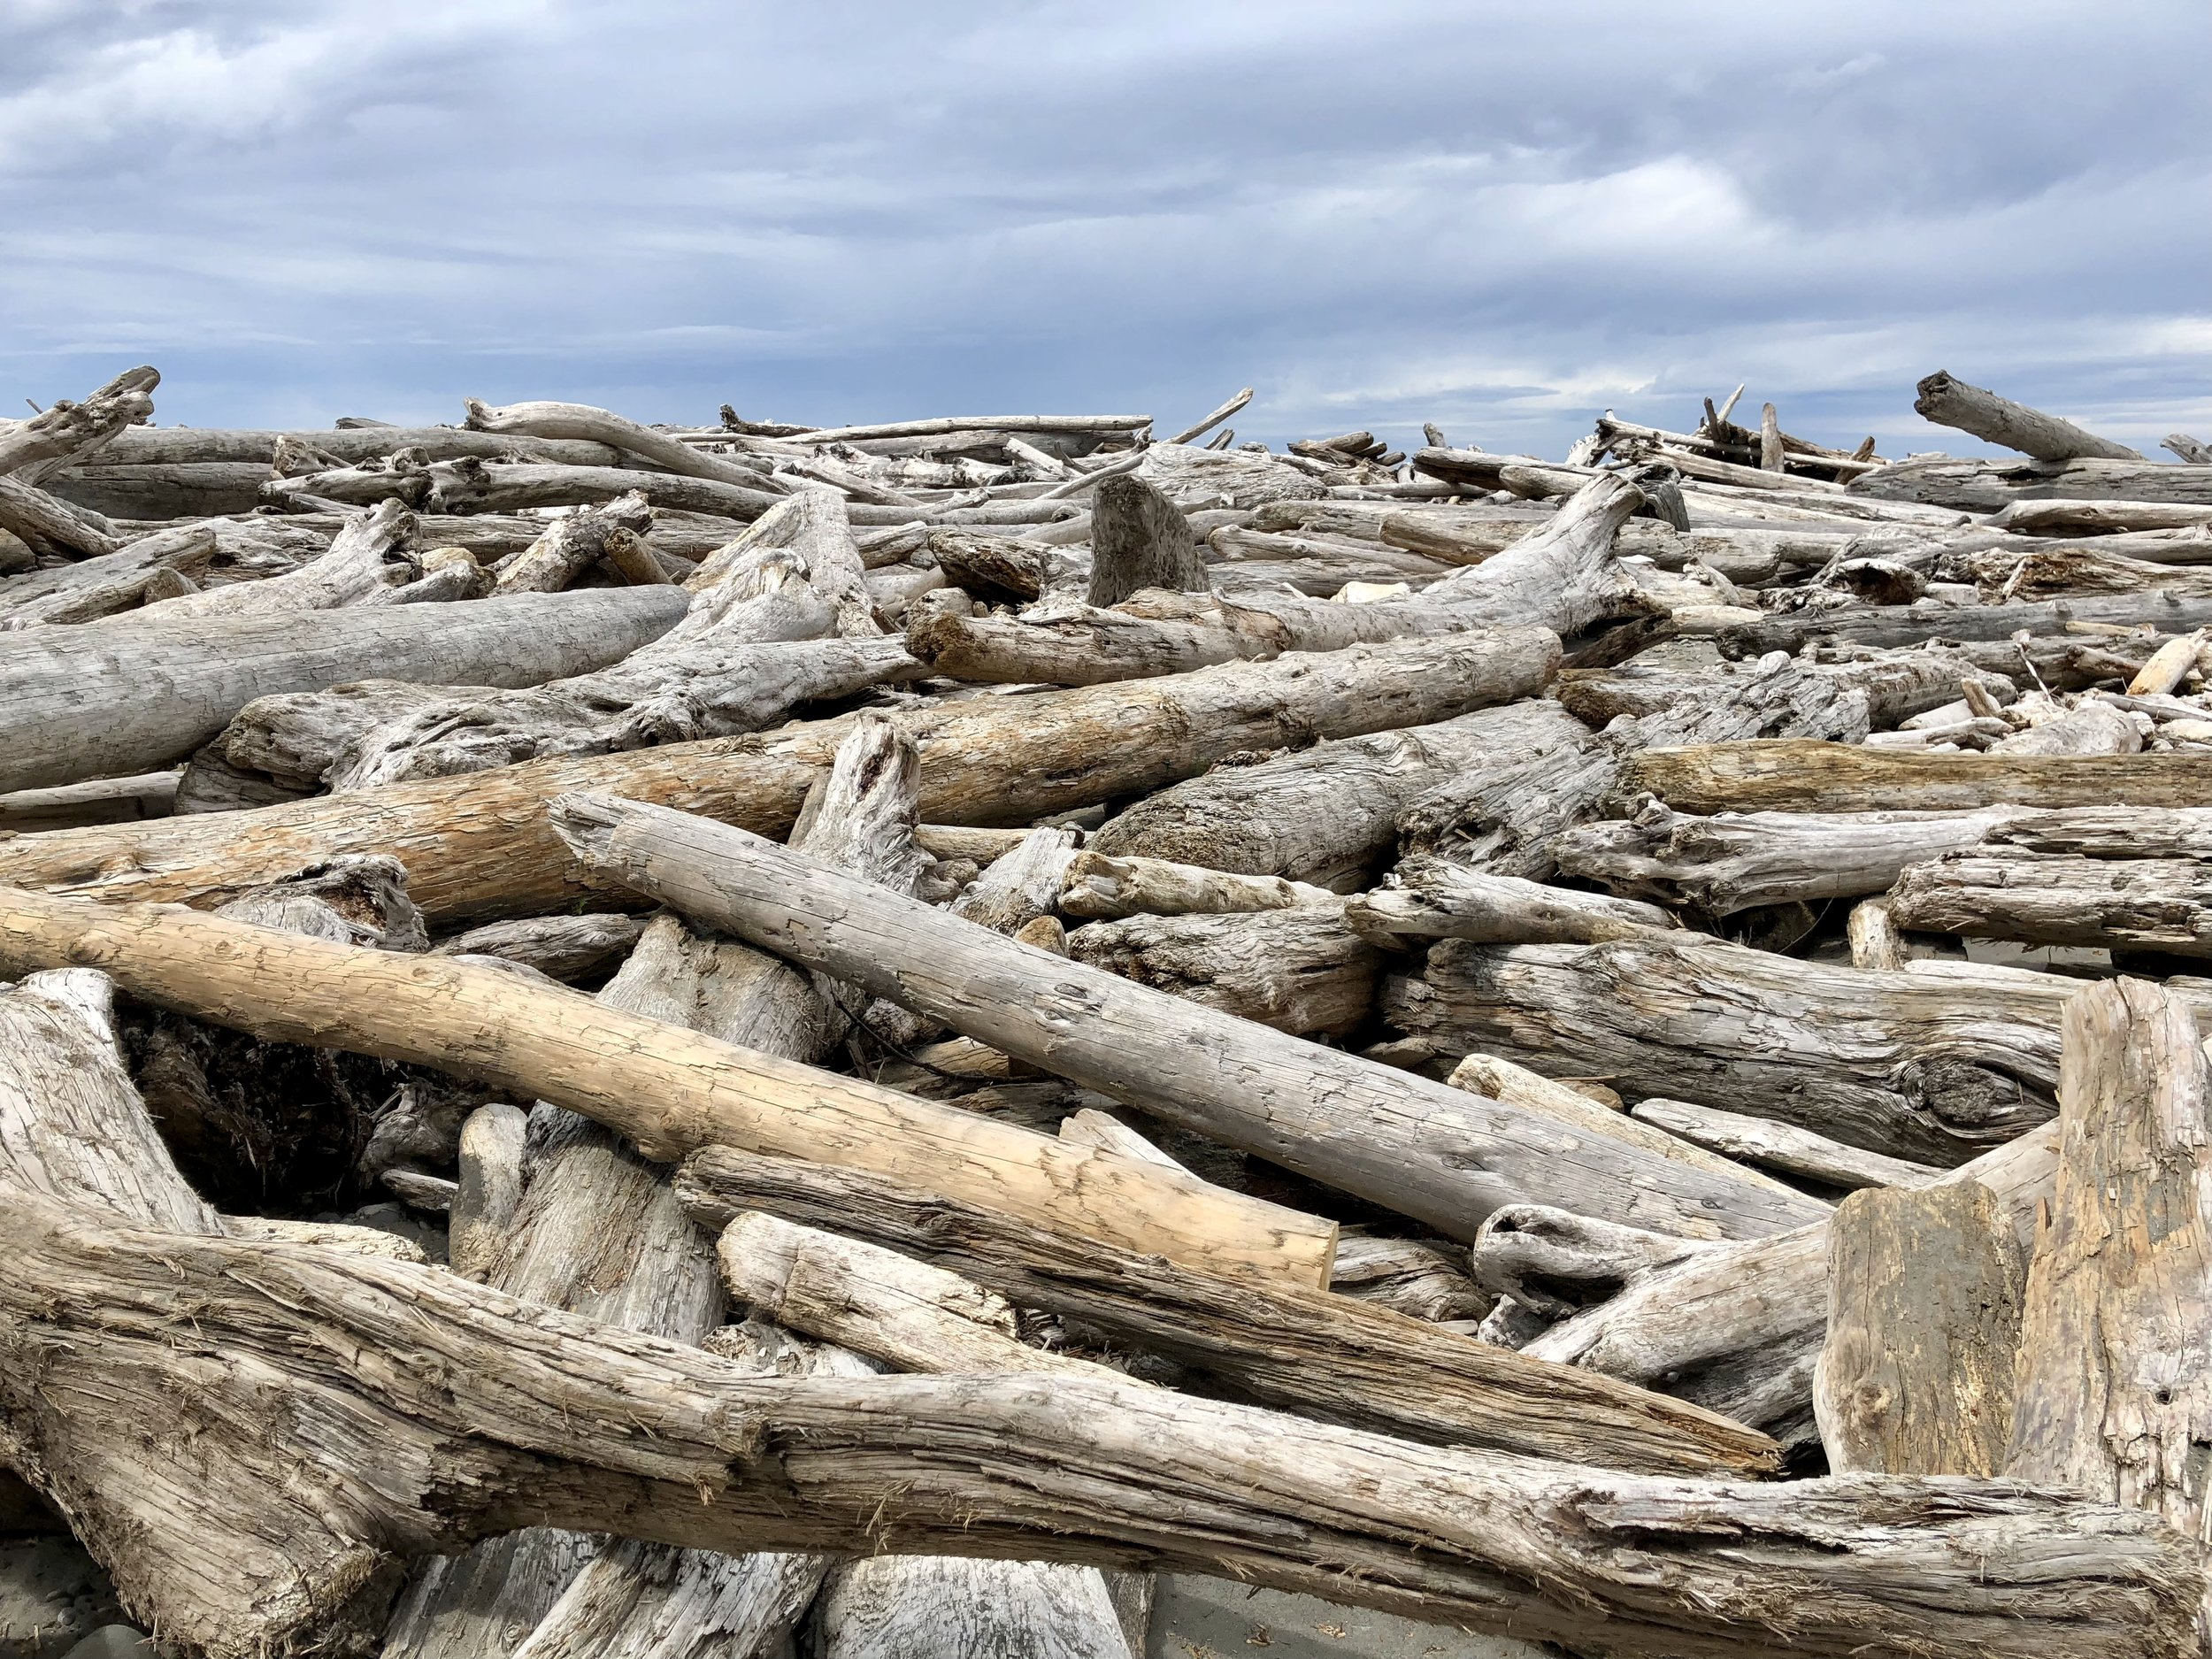 up close and personal with the driftwood!